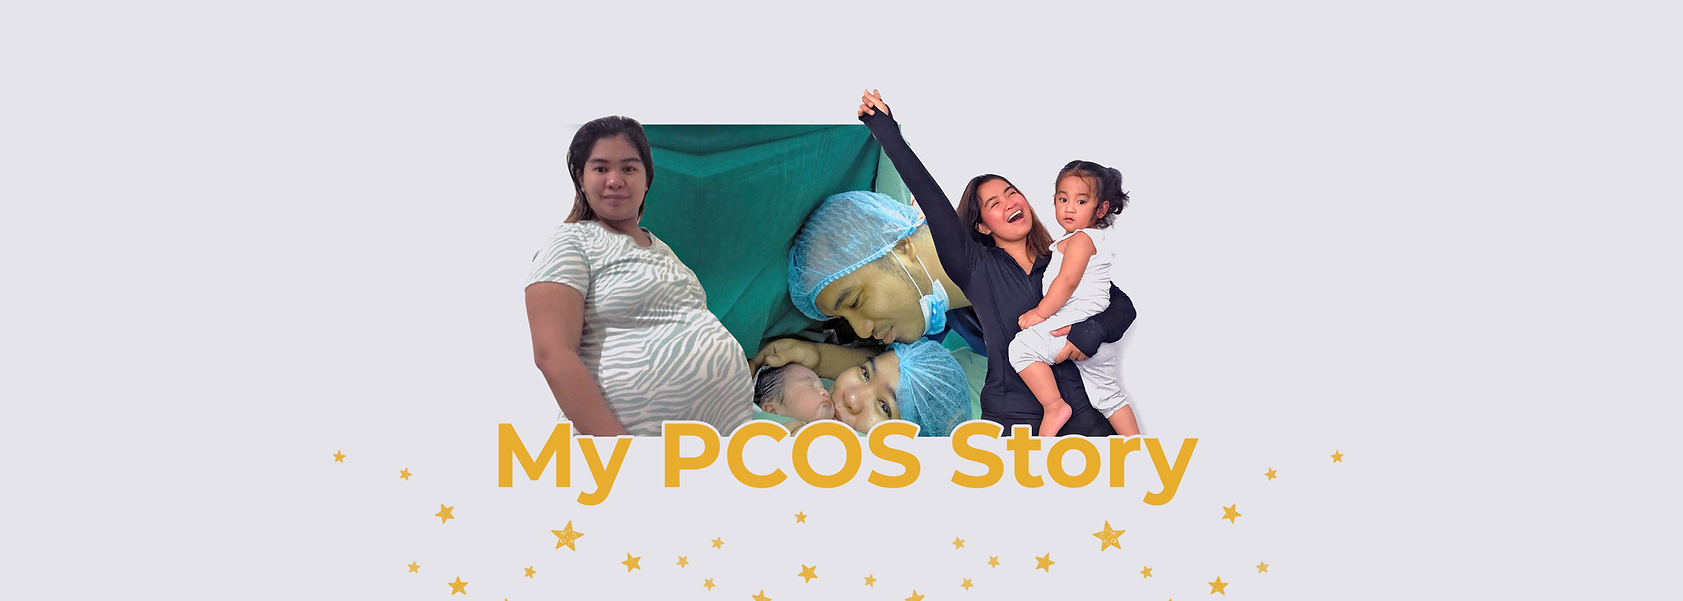 my pcos story.png